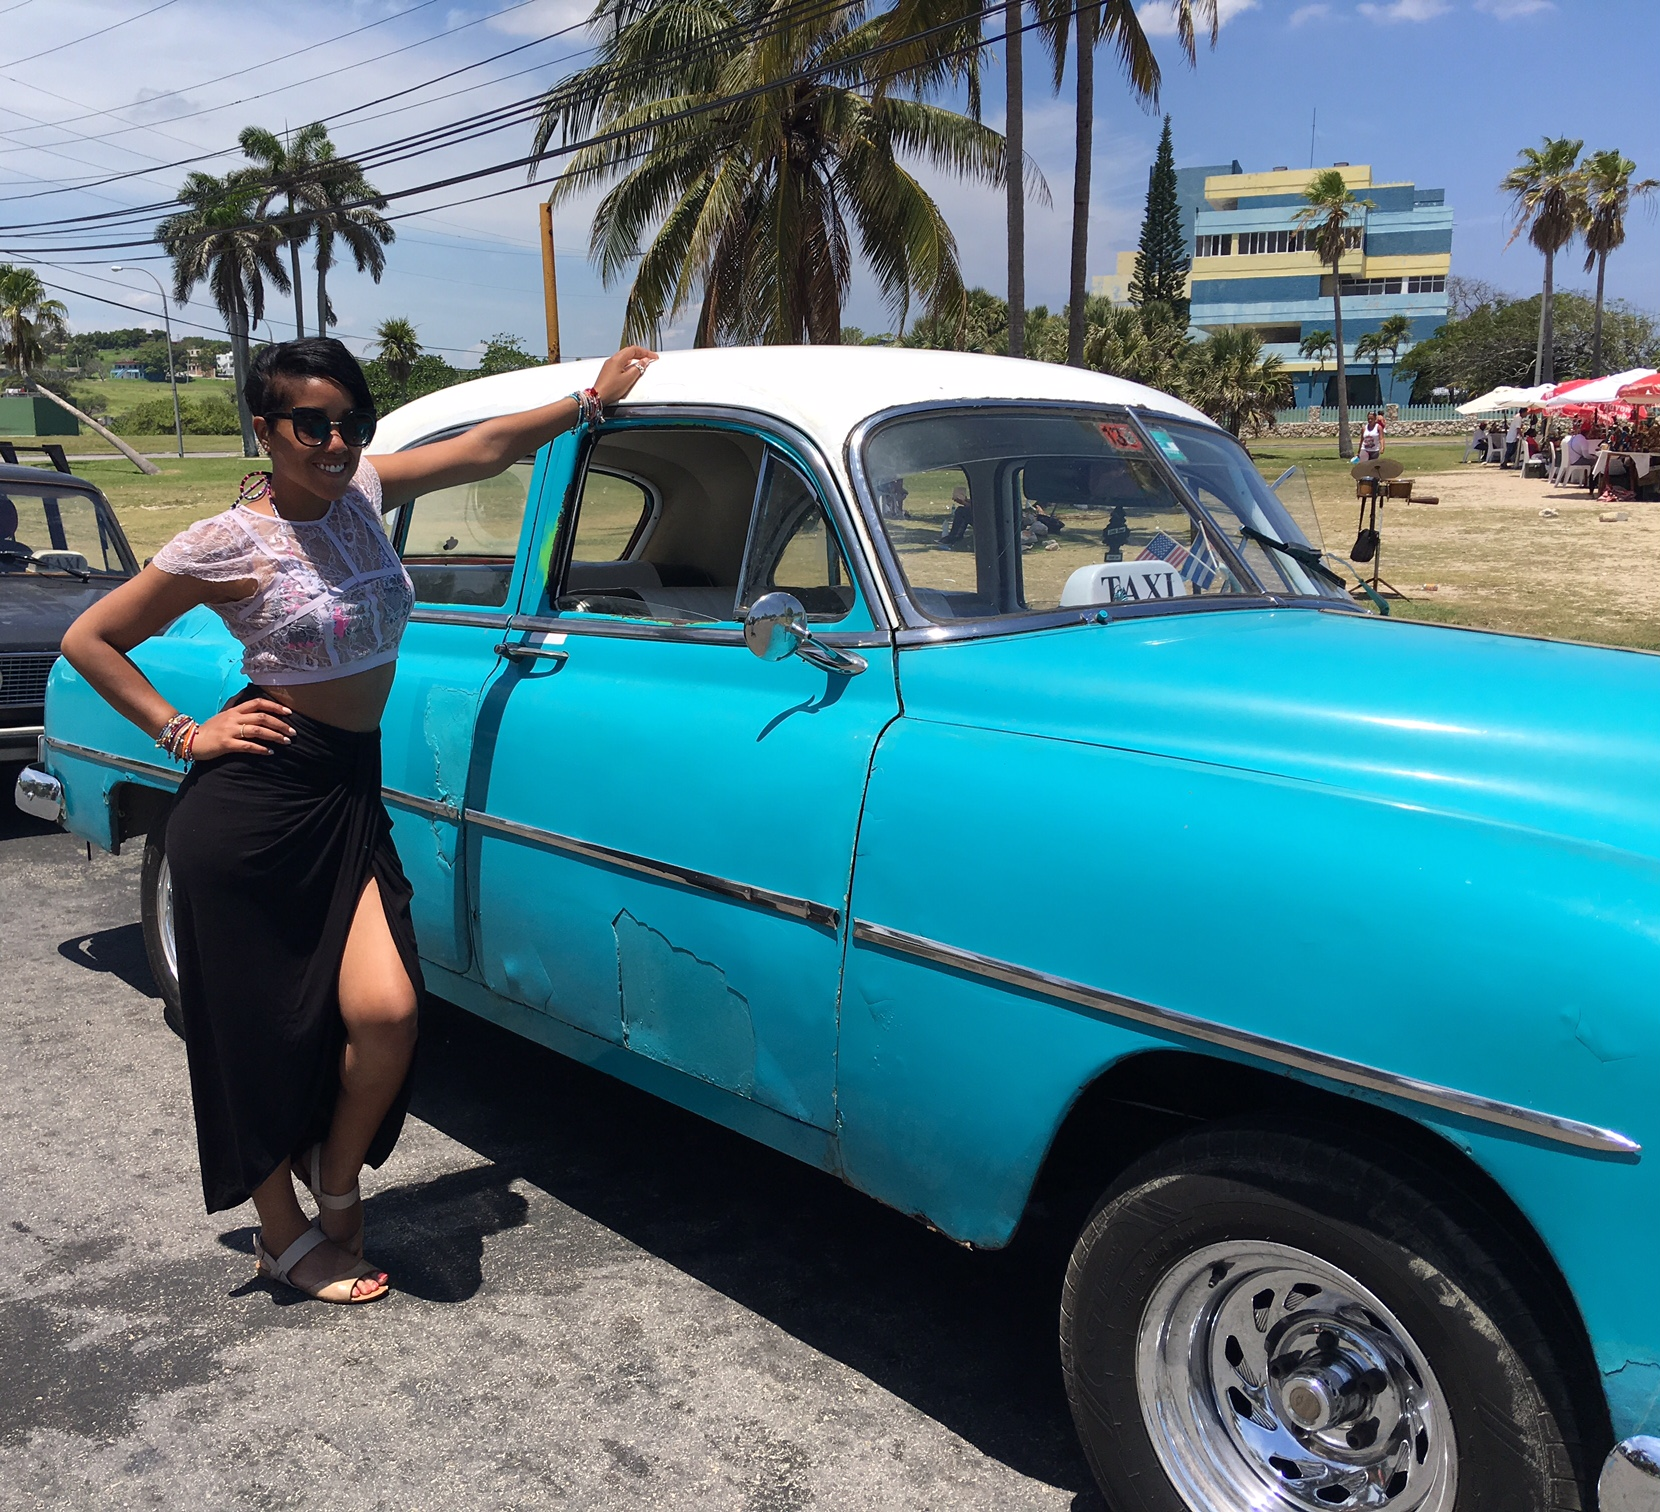 9 Things I Wish I Would've Known about Cuba